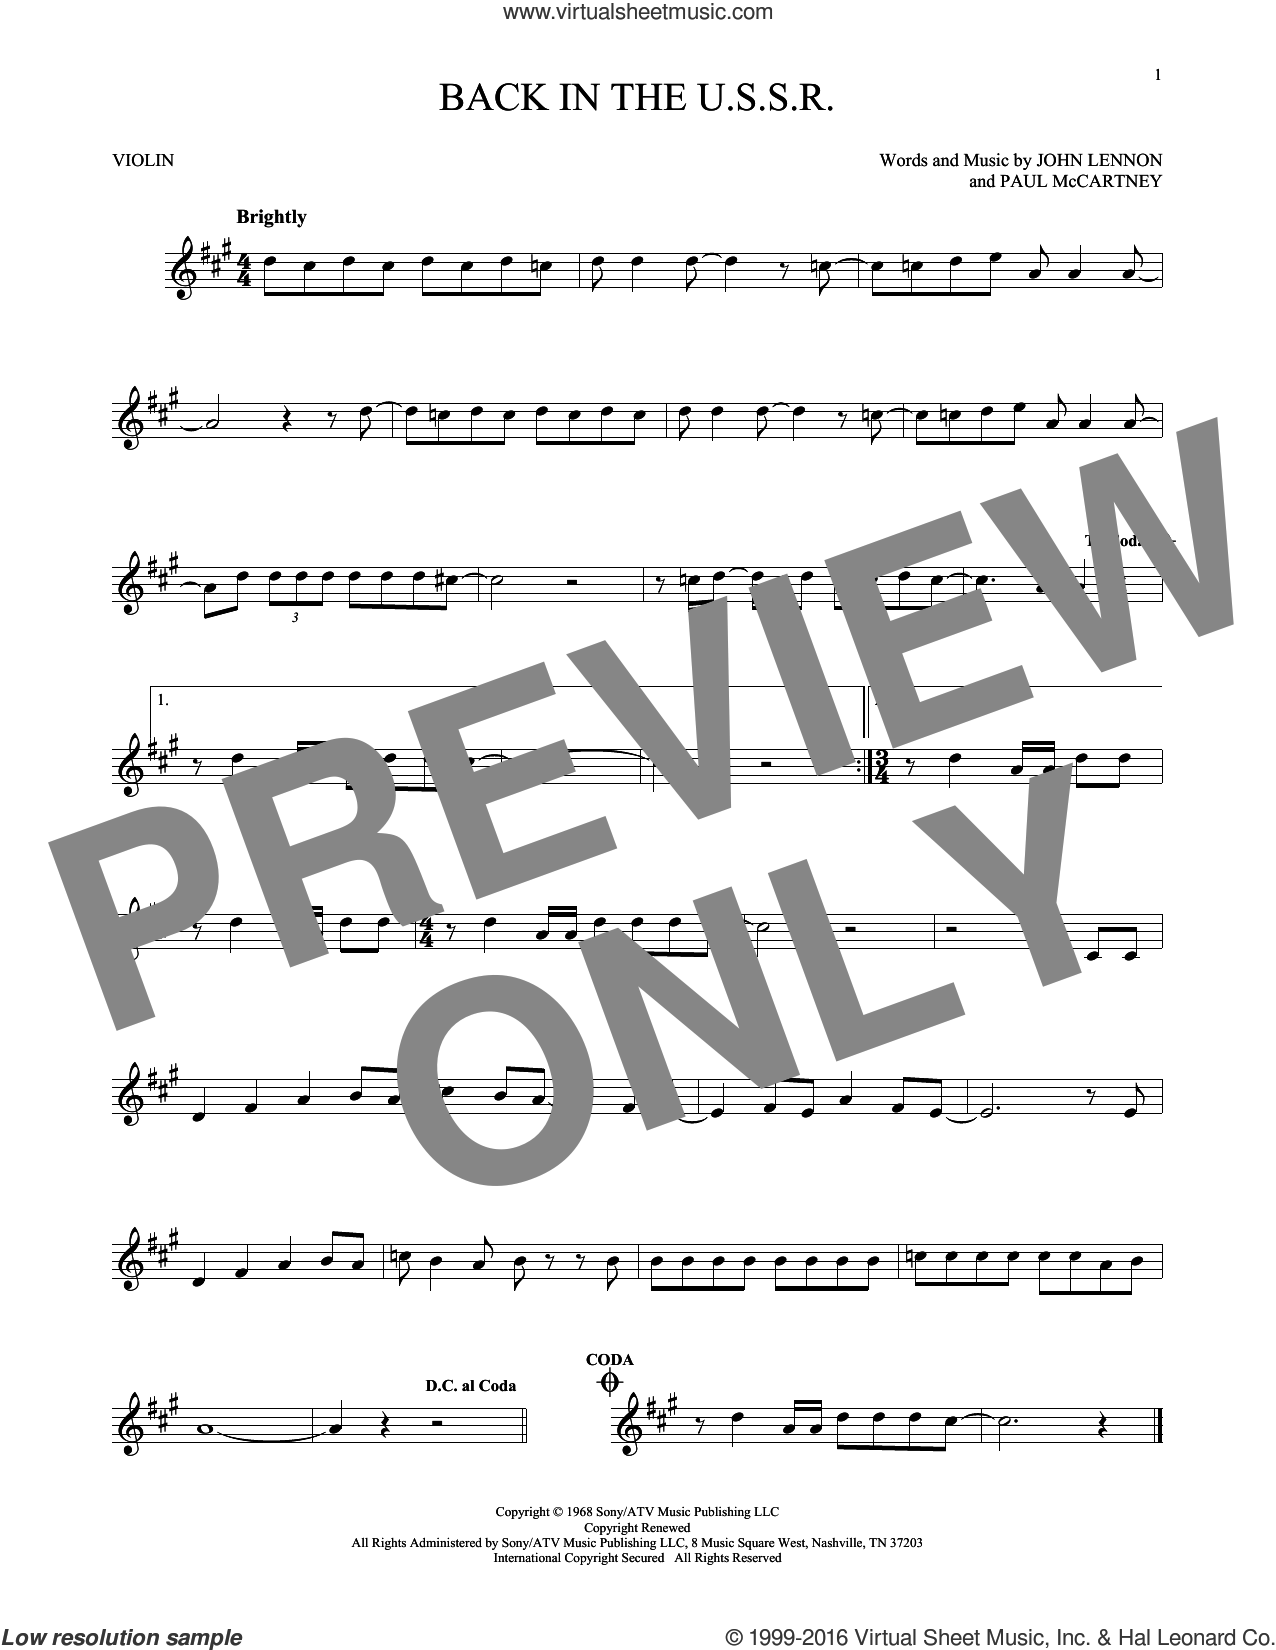 Back In The U.S.S.R. sheet music for violin solo by The Beatles, Chubby Checker, John Lennon and Paul McCartney, intermediate